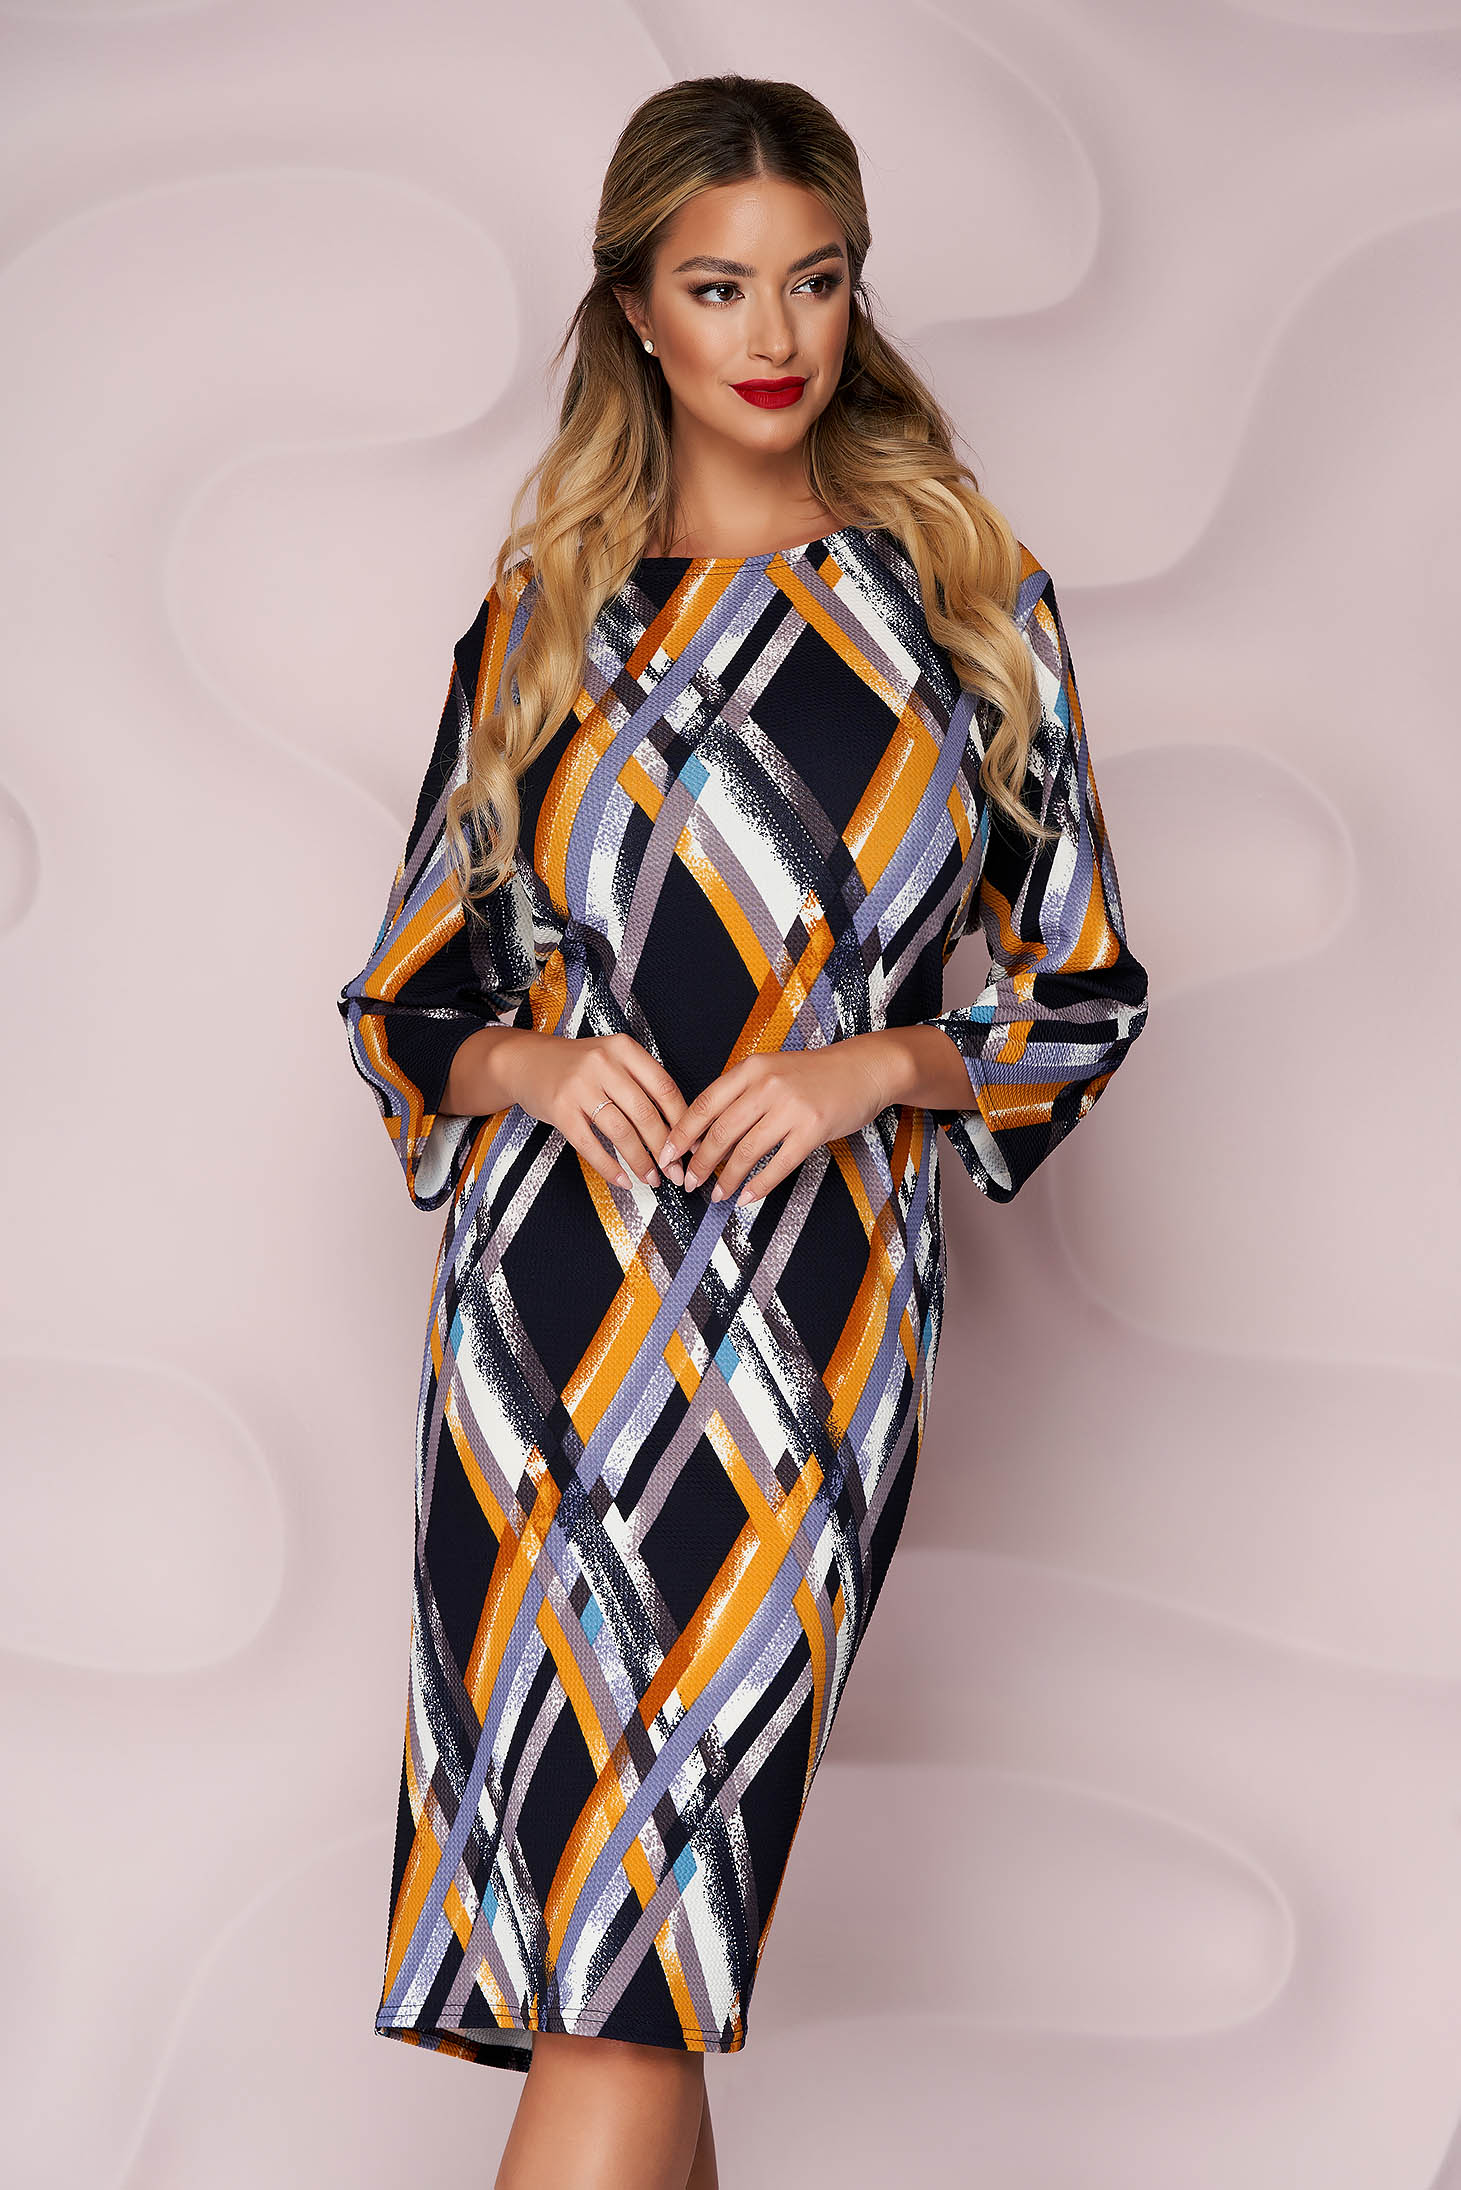 Dress midi straight wrinkled material from elastic fabric long sleeved